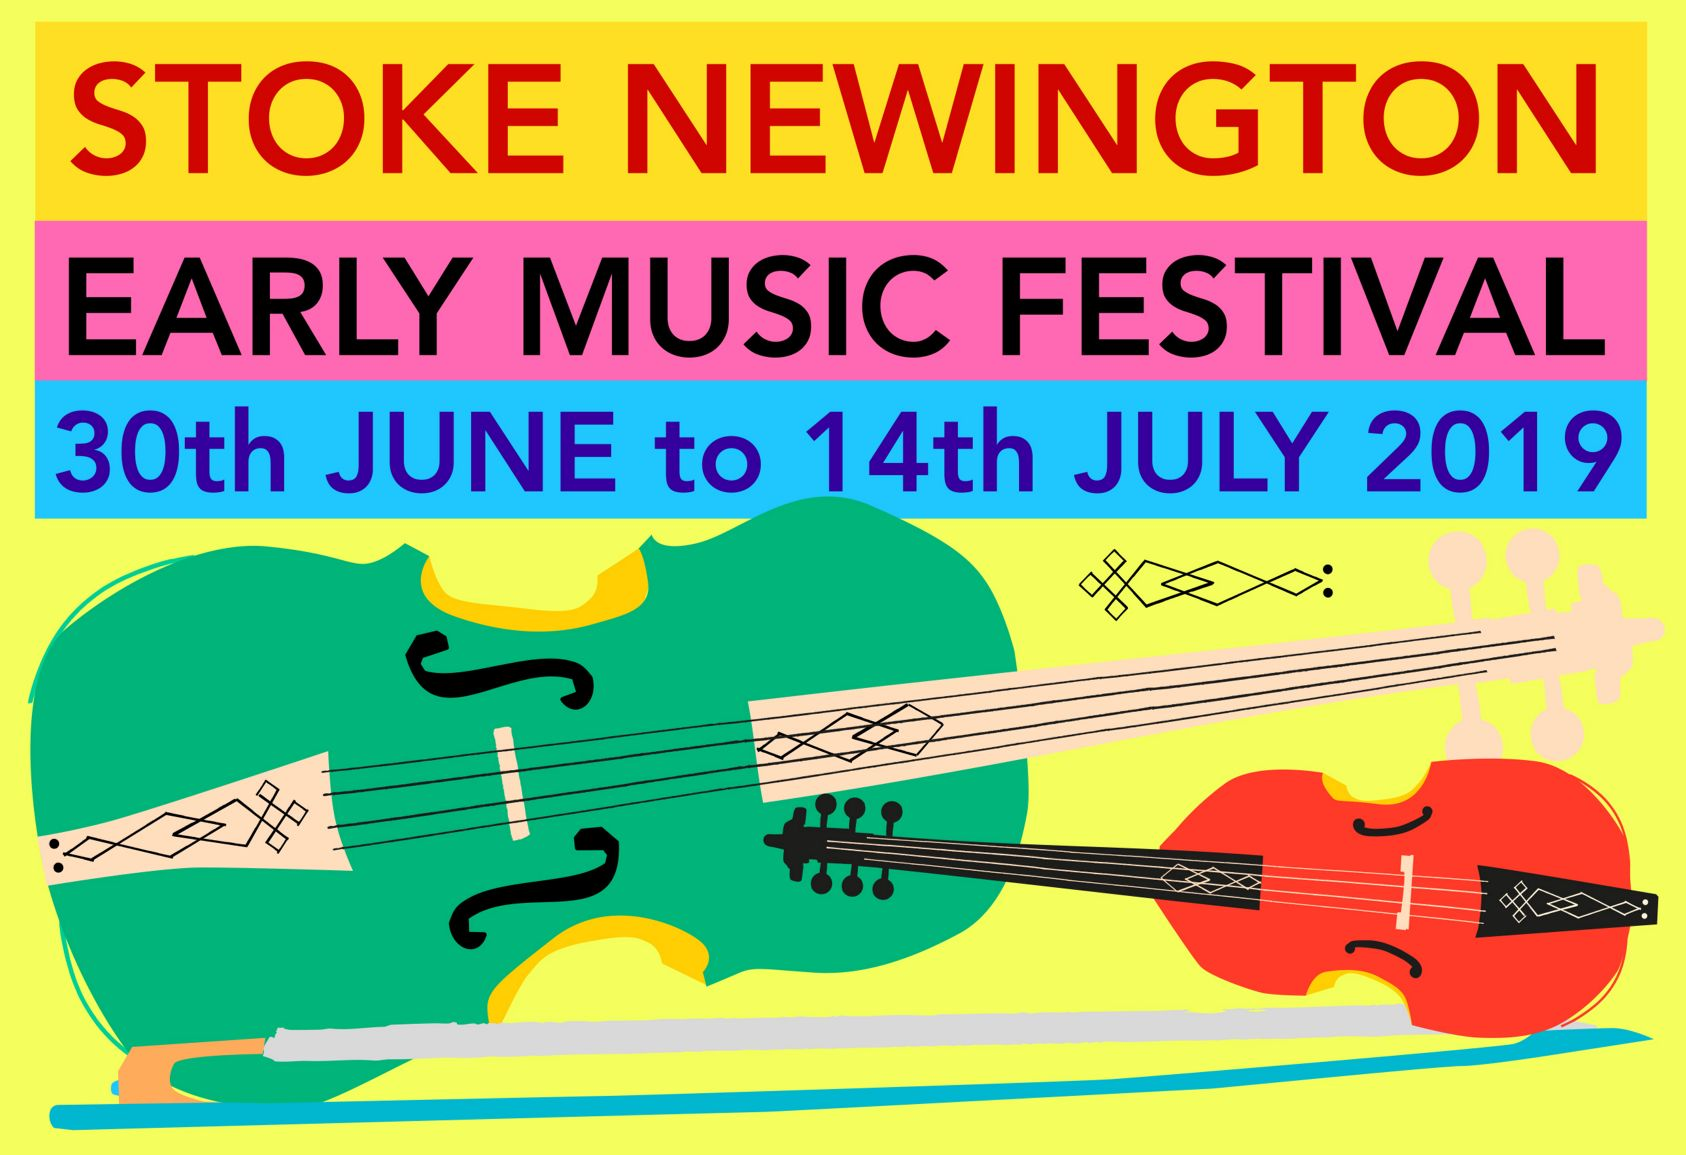 Stoke Newington Early Music Festival 2019